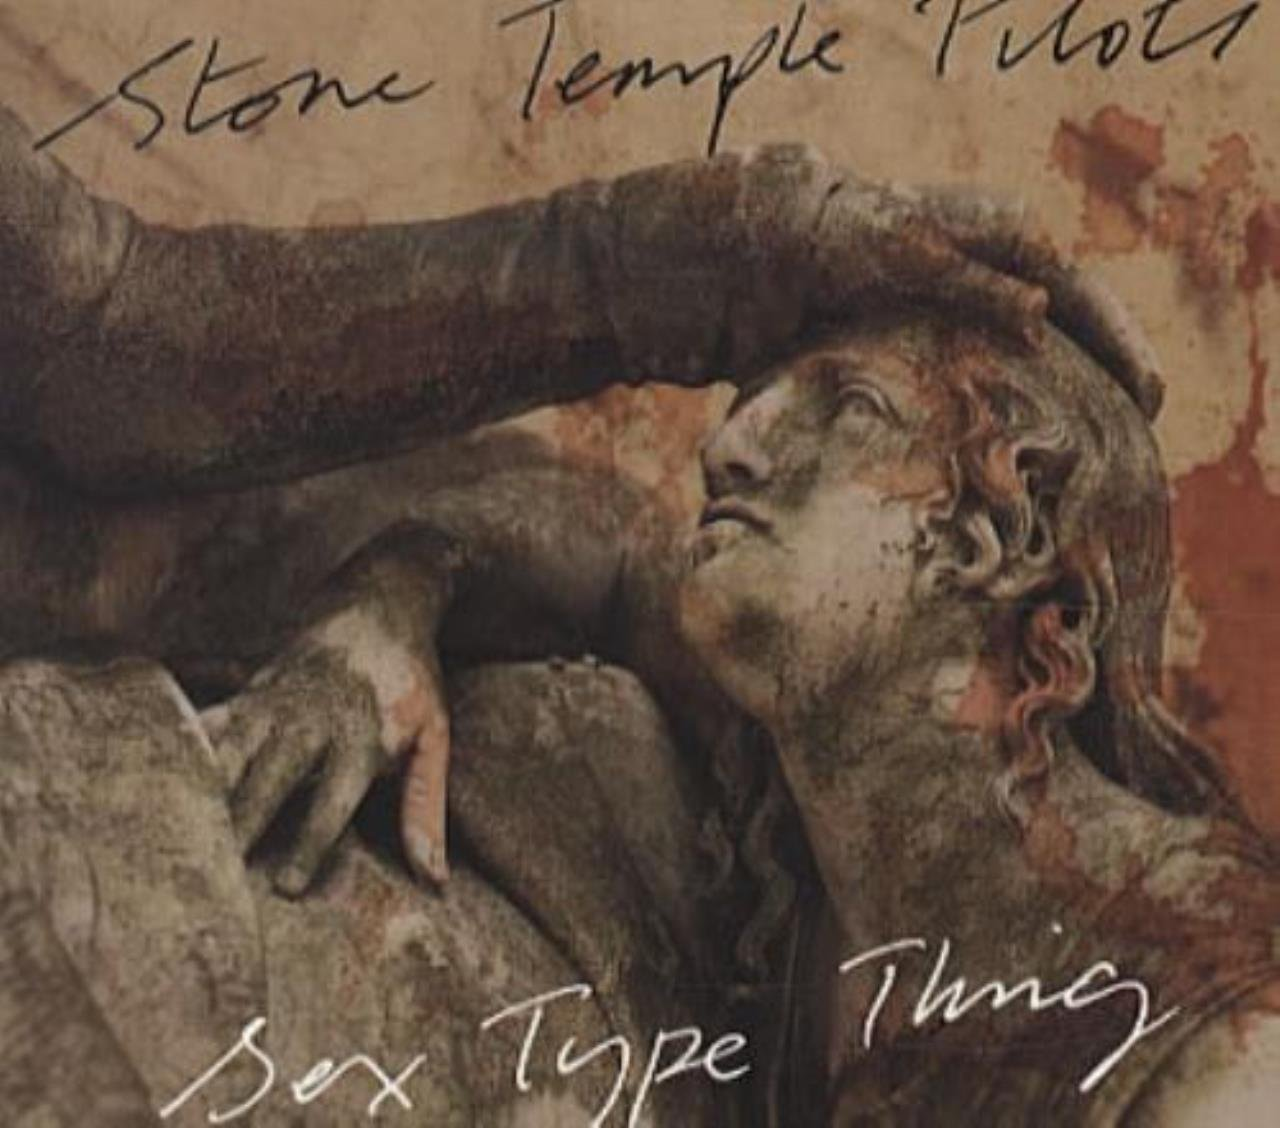 Stone temple pilots sex type thing foto 66